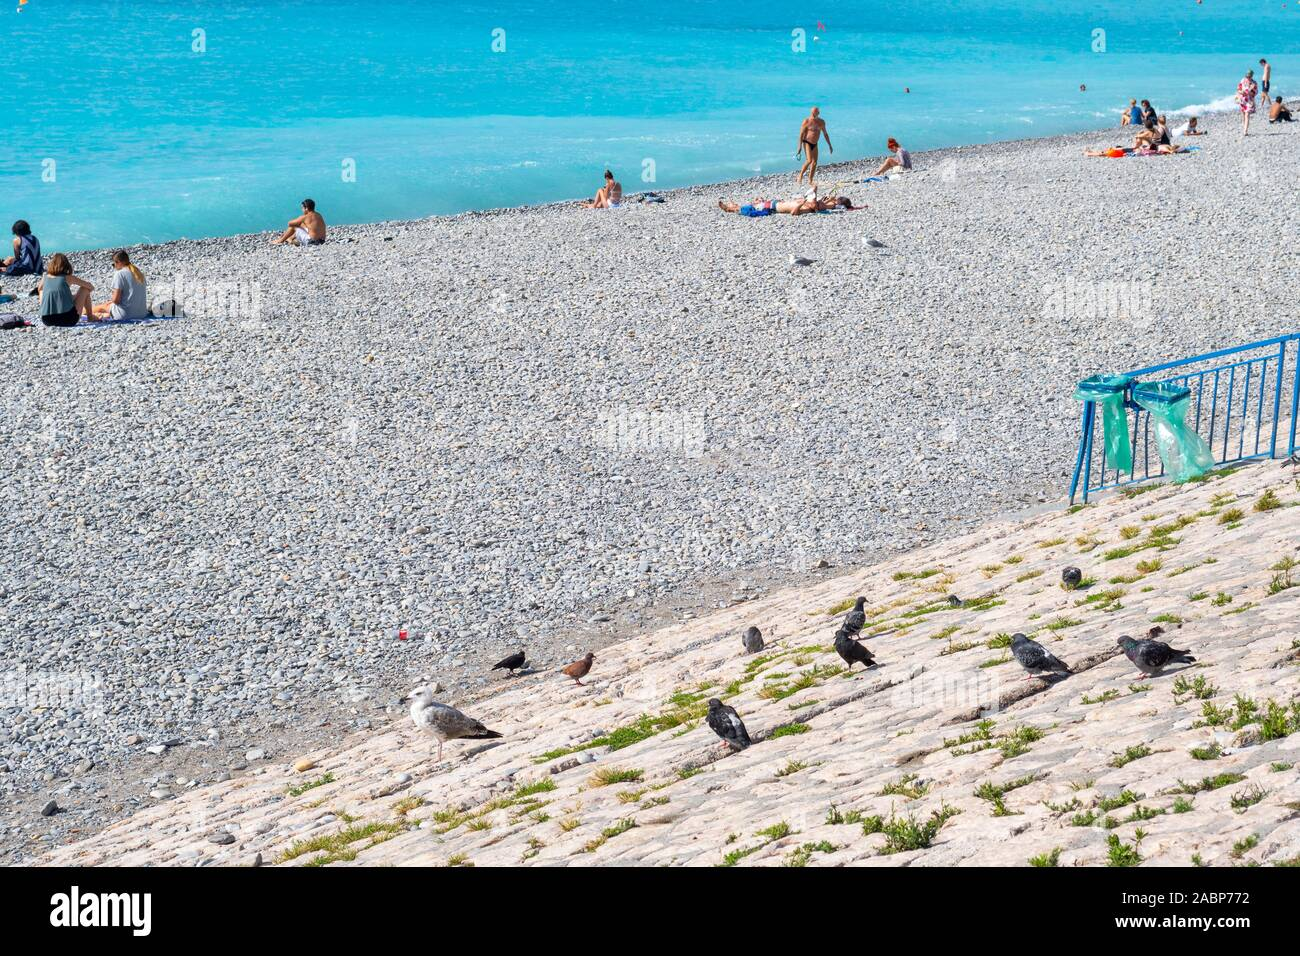 Pigeons and seagulls perch on a retaining wall along the rocky beach of the Bay of Angels as tourists enjoy the turquoise waters of the Mediterranean Stock Photo